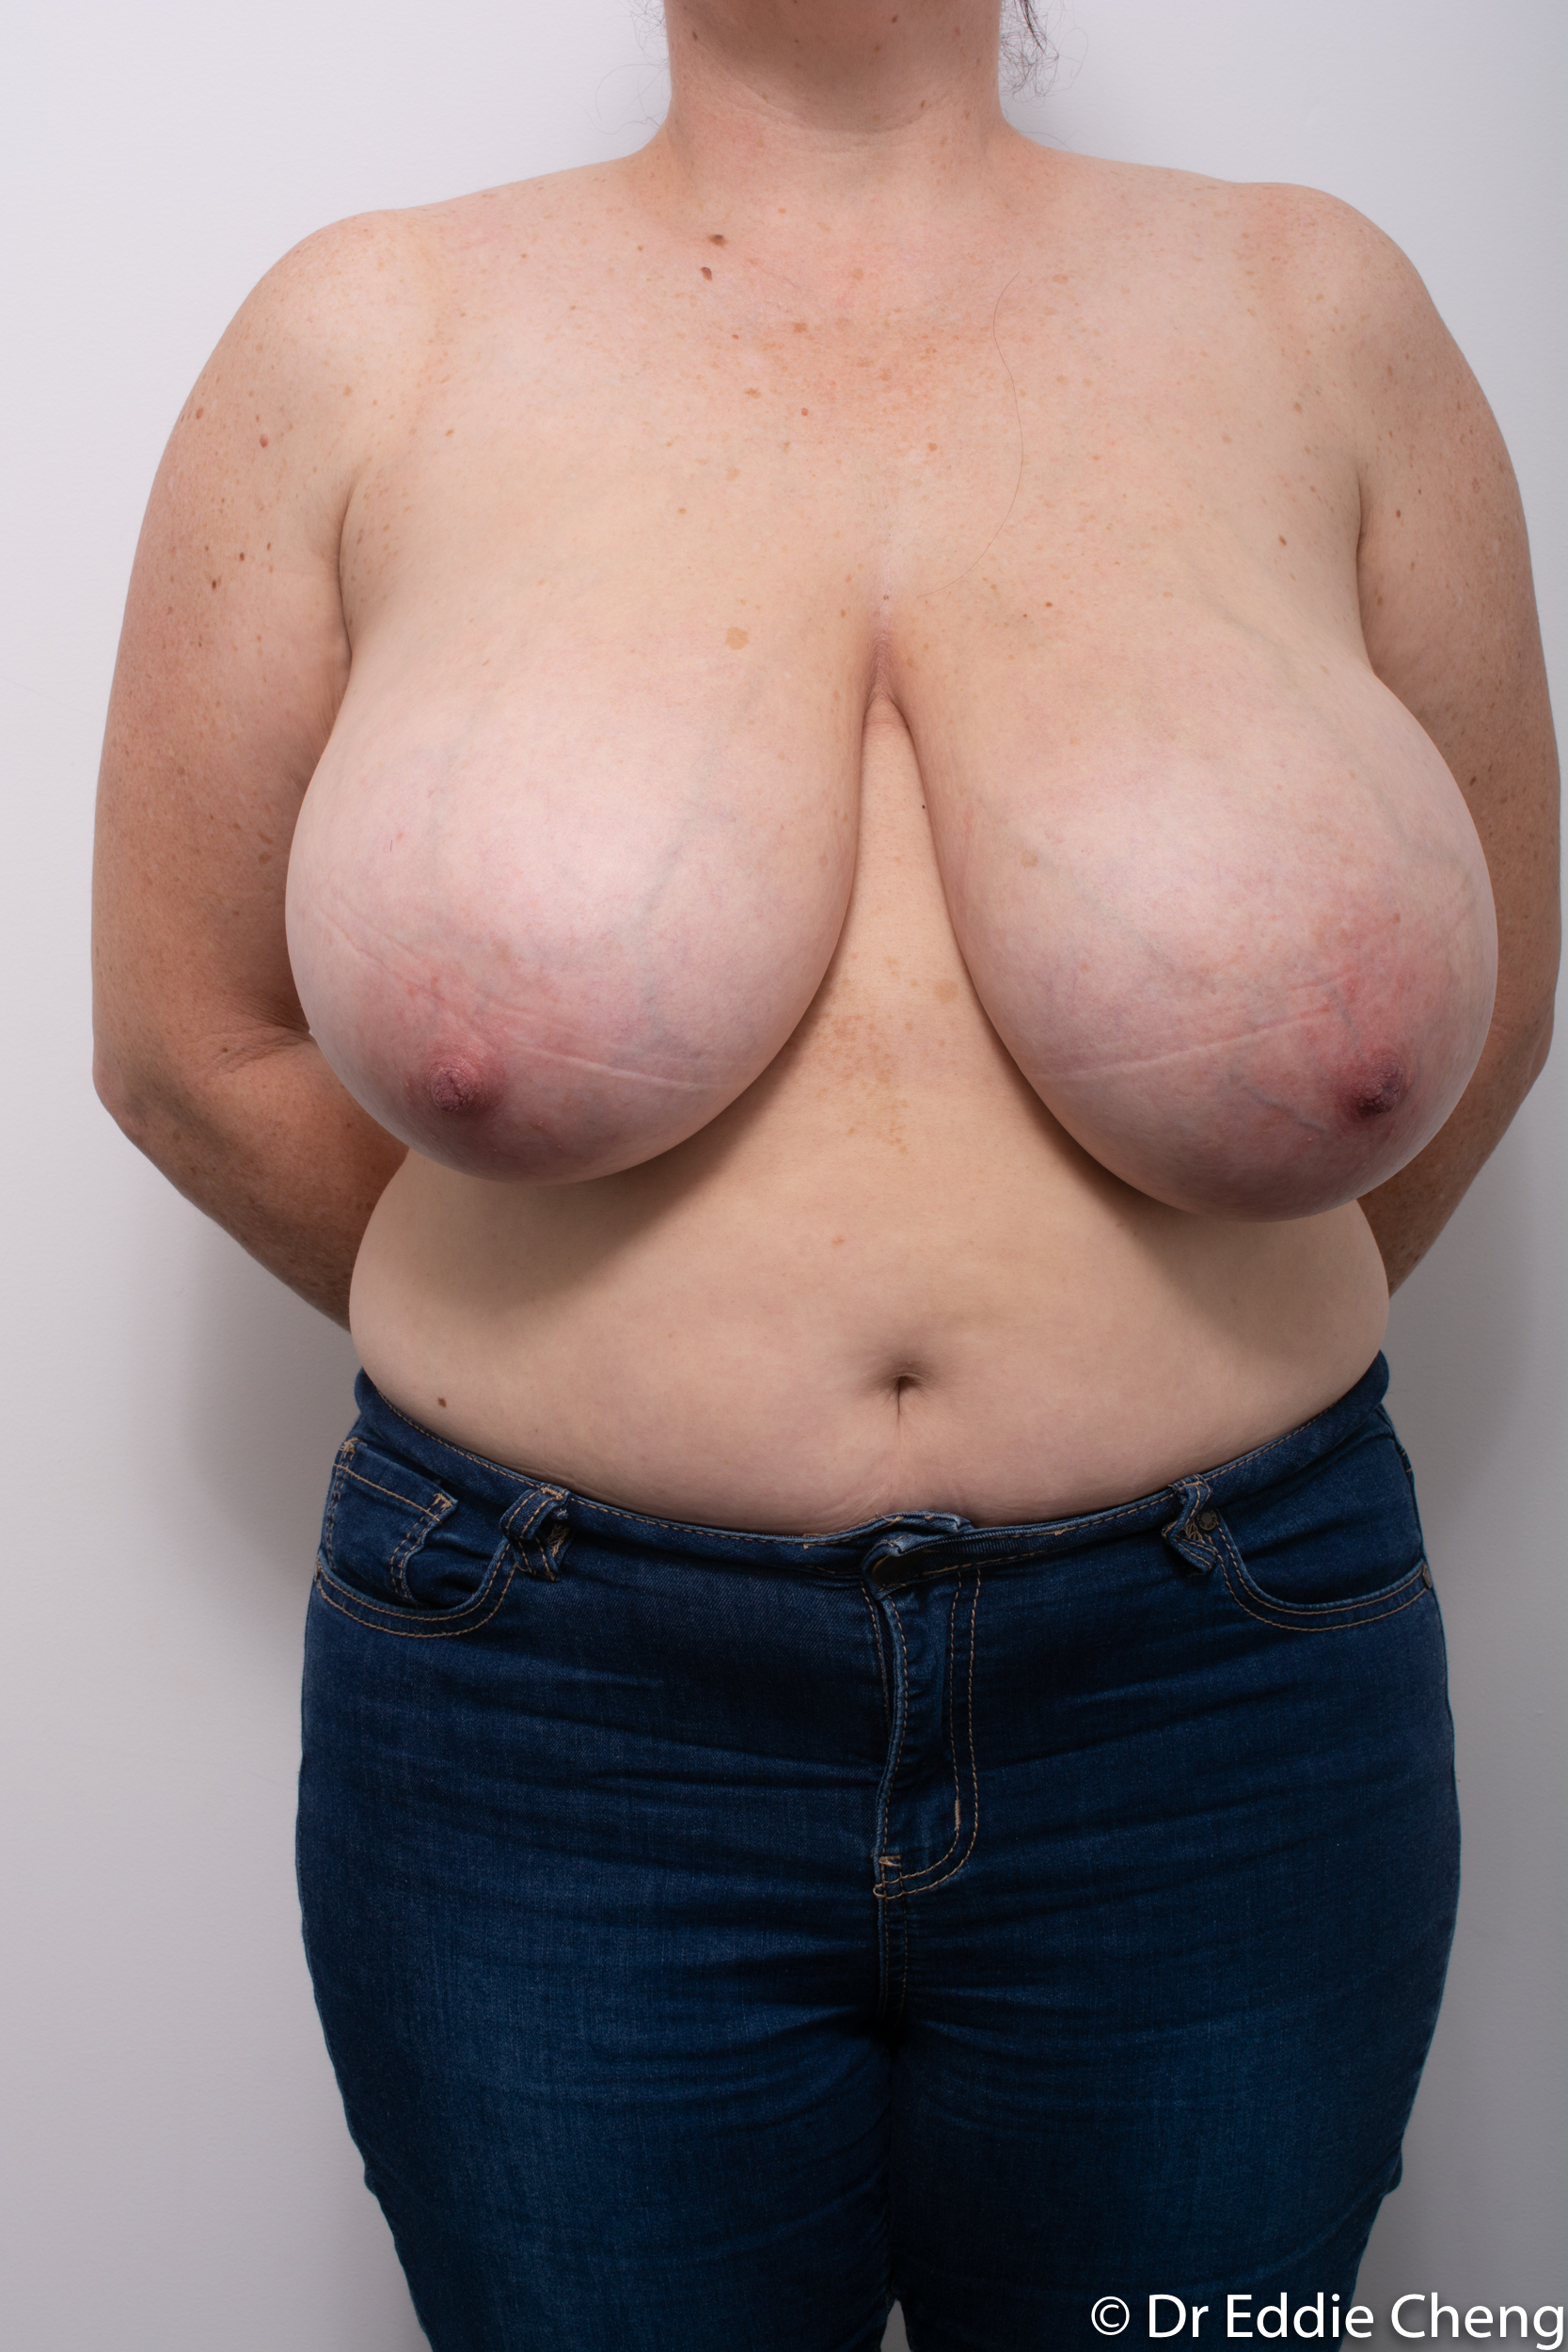 breast reduction dr eddie cheng brisbane surgeon pre and post operative images-3